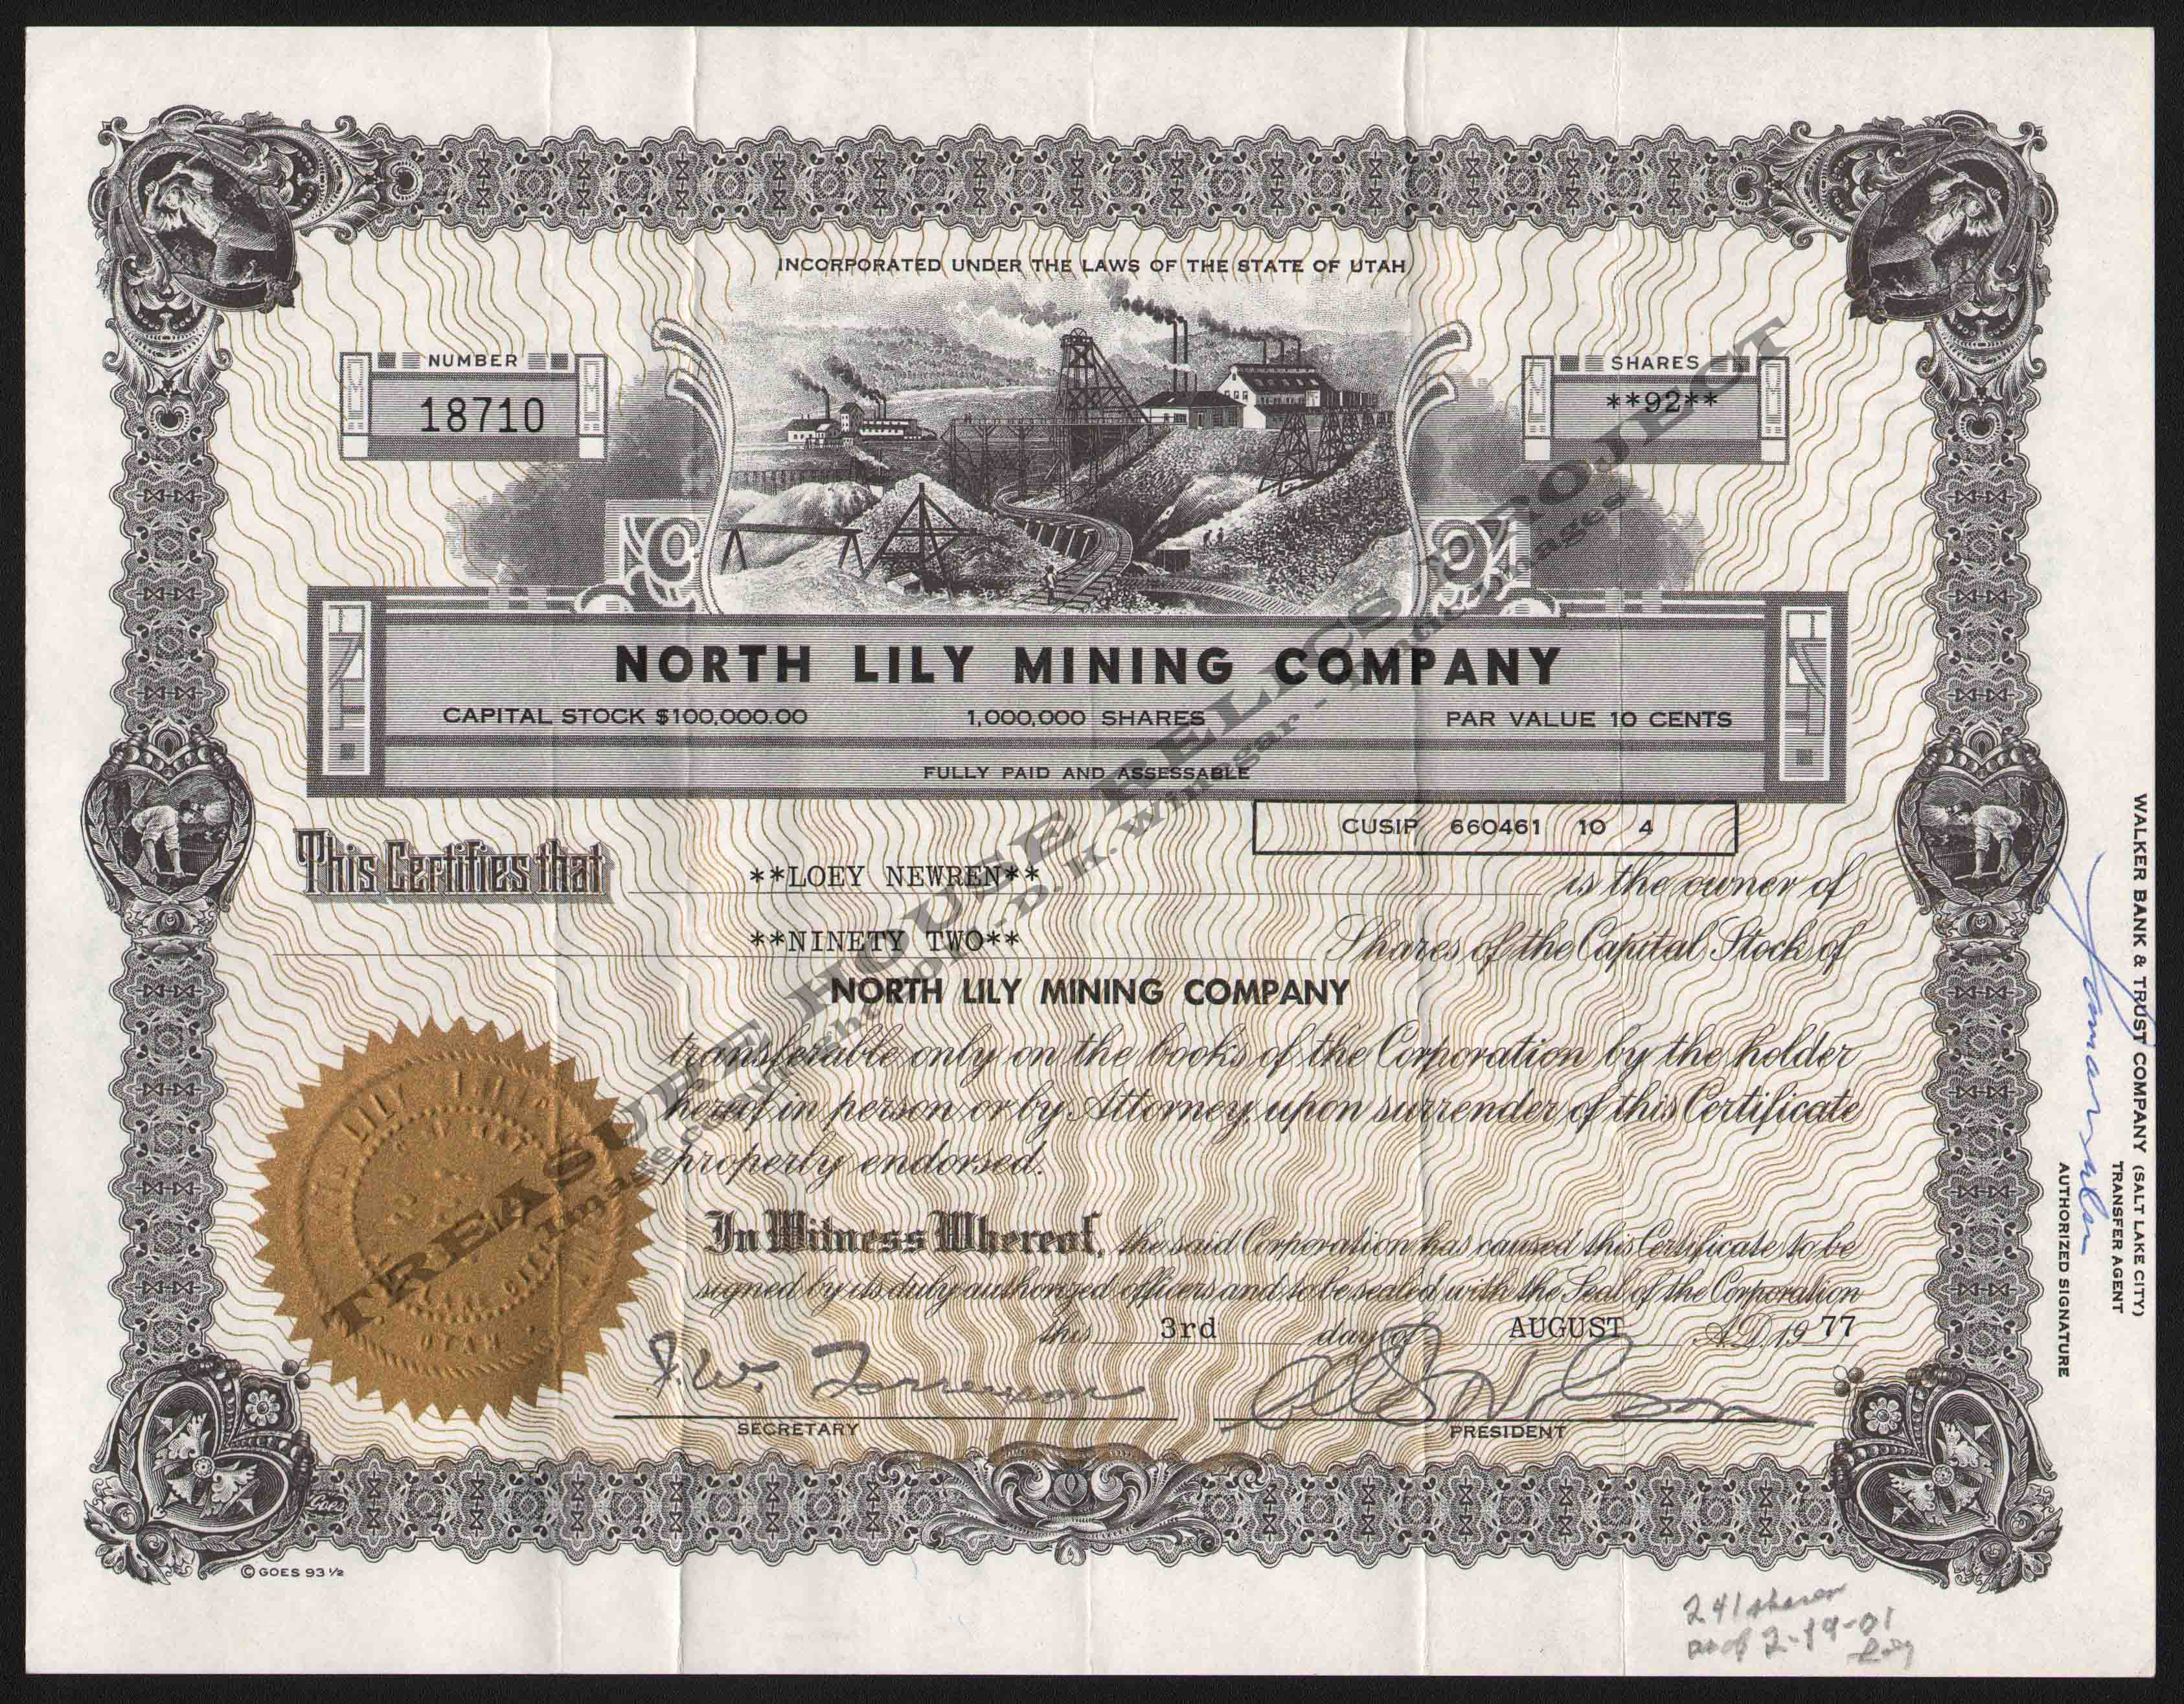 NORTH_LILY_MINING_CO_18710_300_emboss.jpg